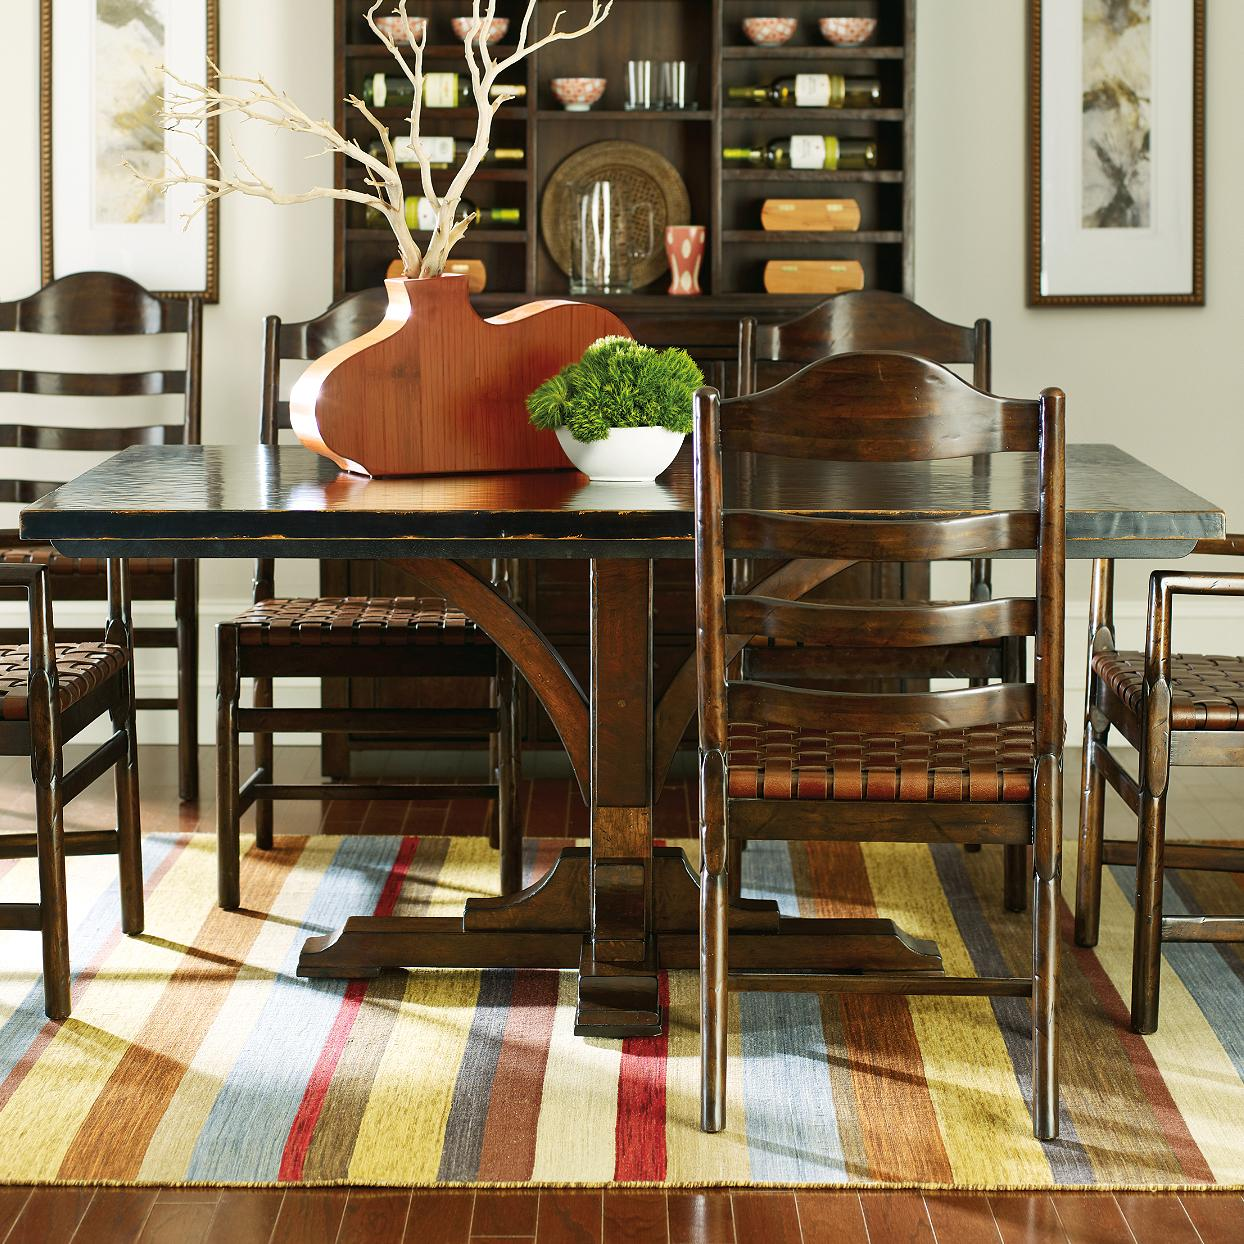 Stanley Furniture The Classic Portfolio Artisan Two-Tone Pedestal Table - Item Number: 135-11-236+81-136